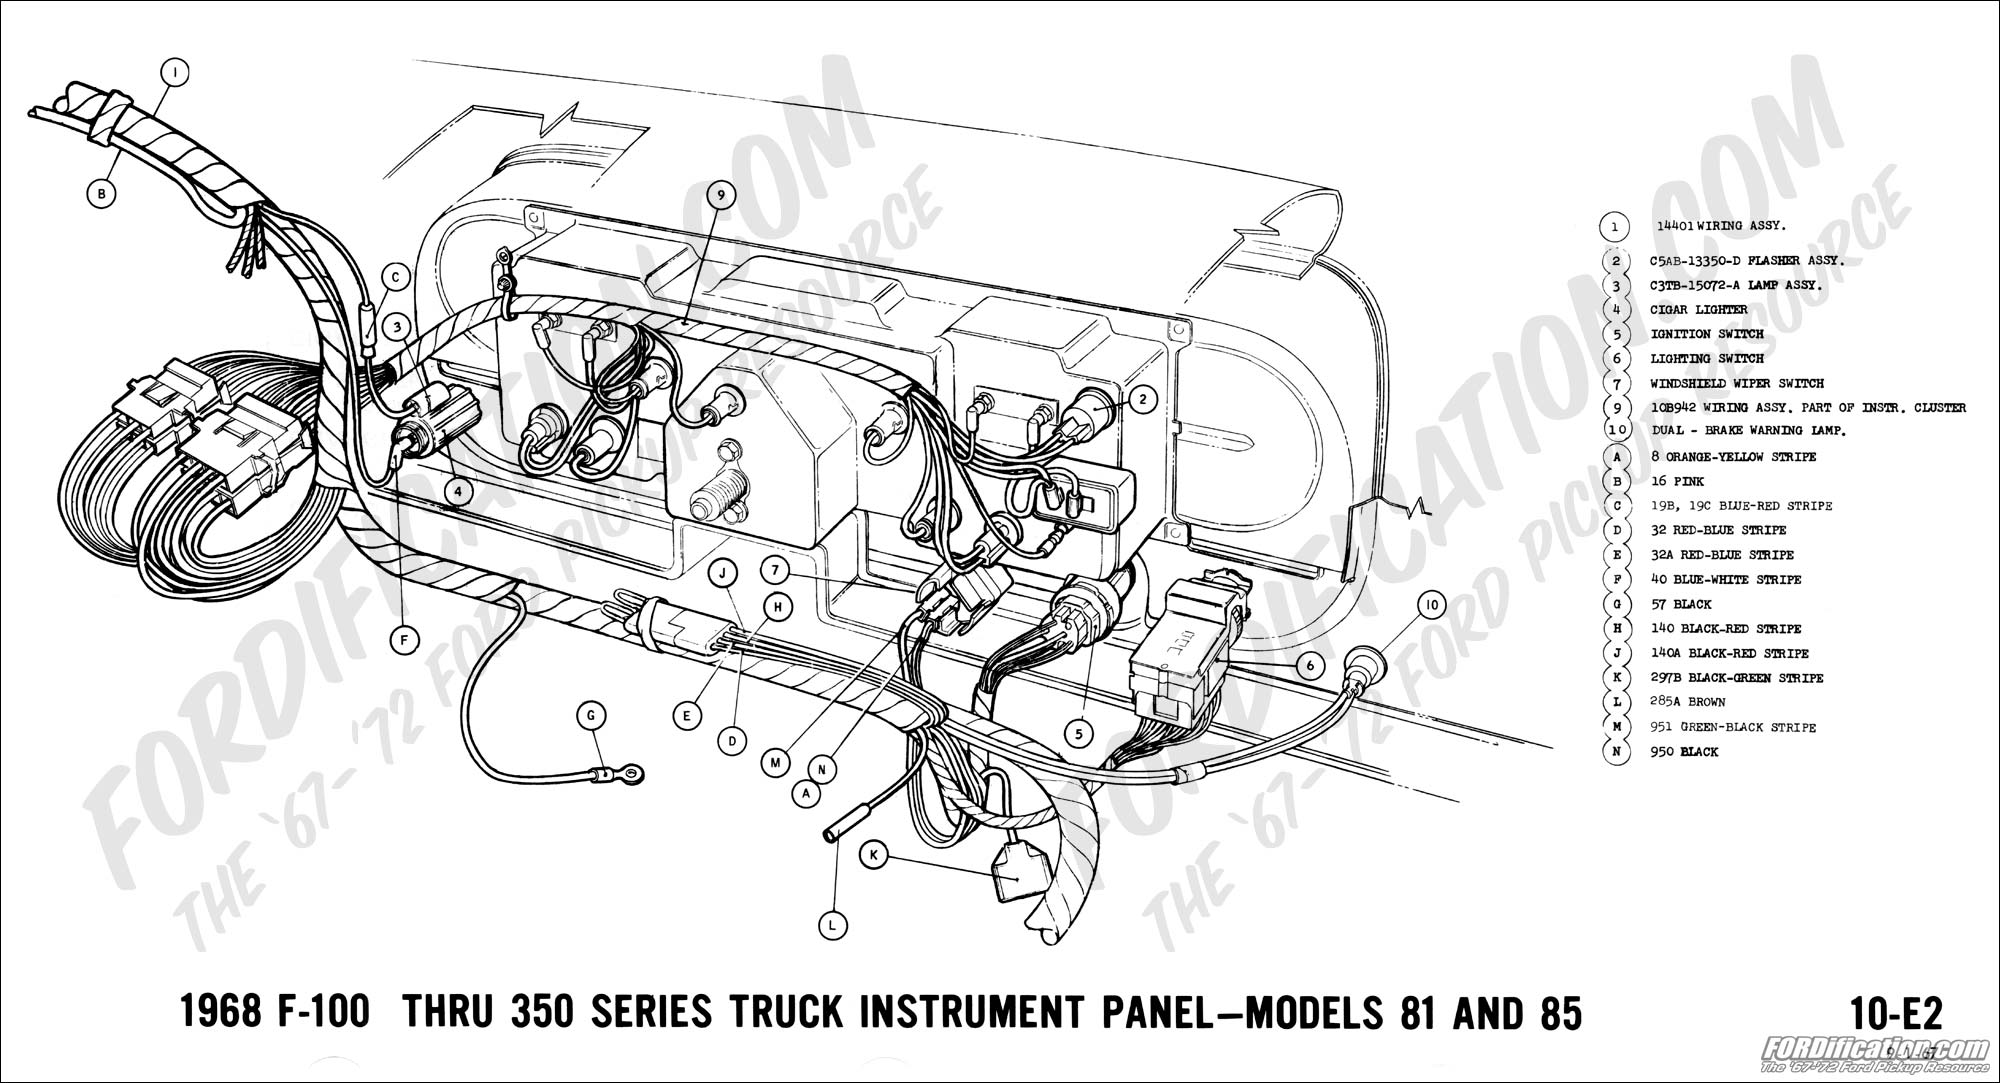 For F350 Injector Wiring Harness Free Download Download Ford Truck Wiring Diagrams Fuel